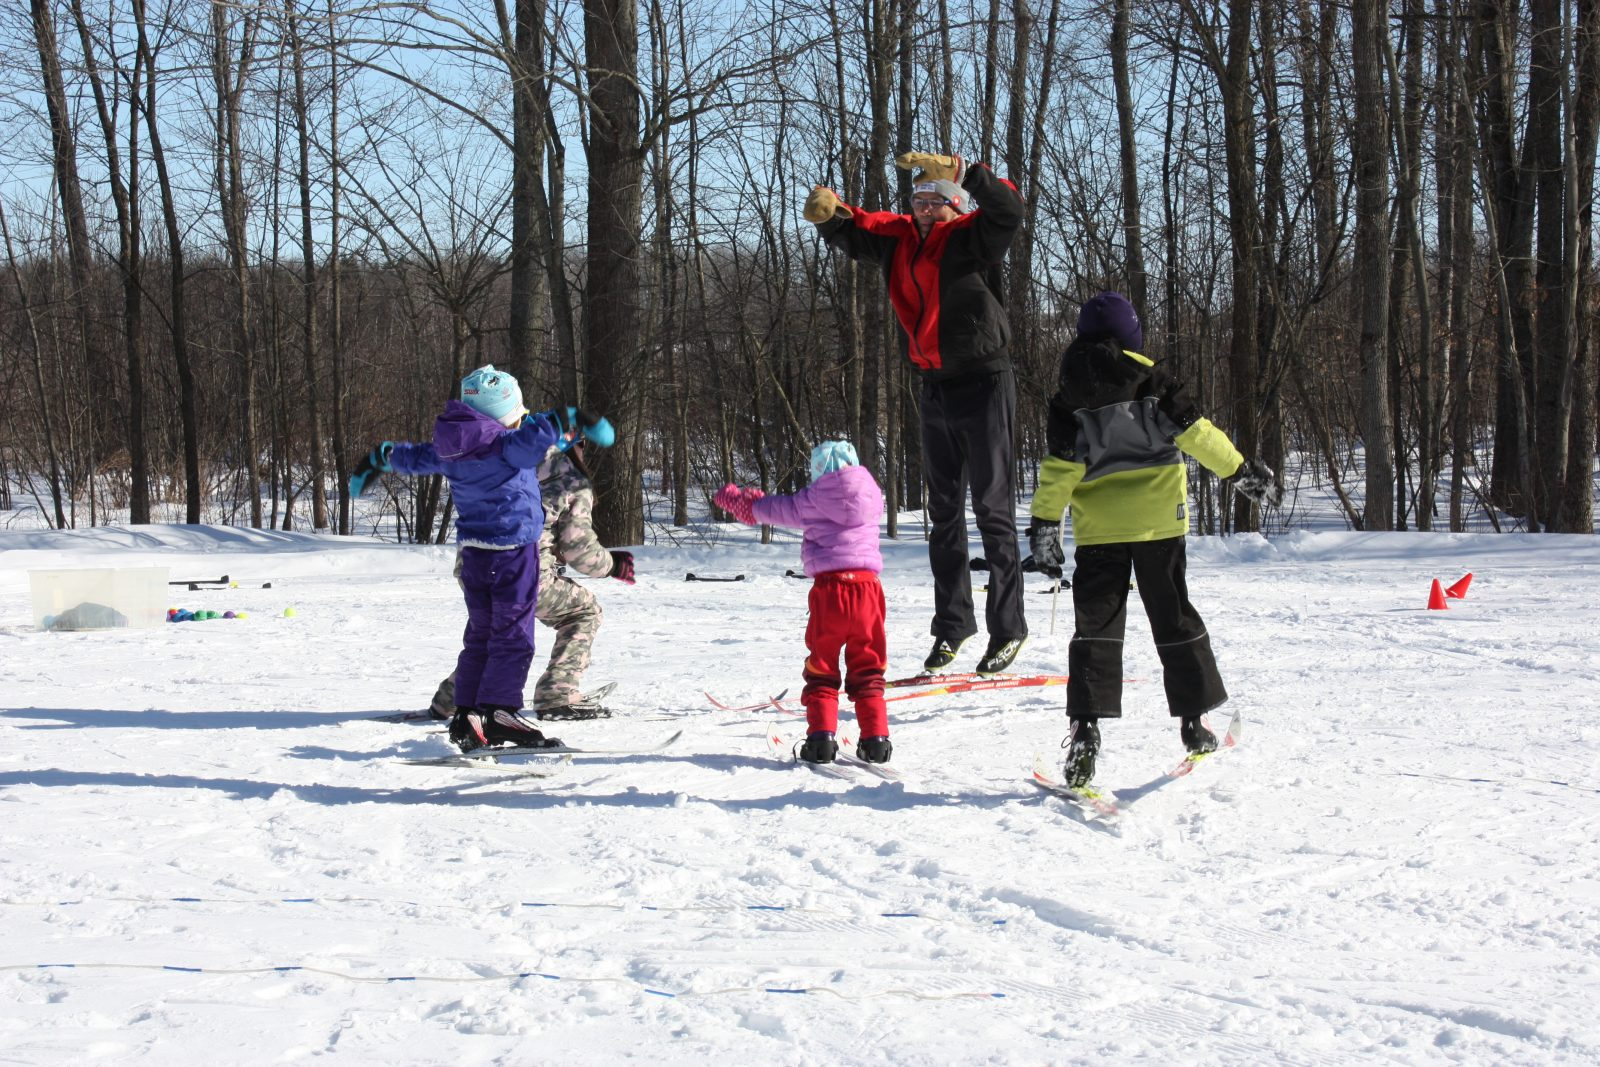 Learn to cross-country ski at Summerstown Trails